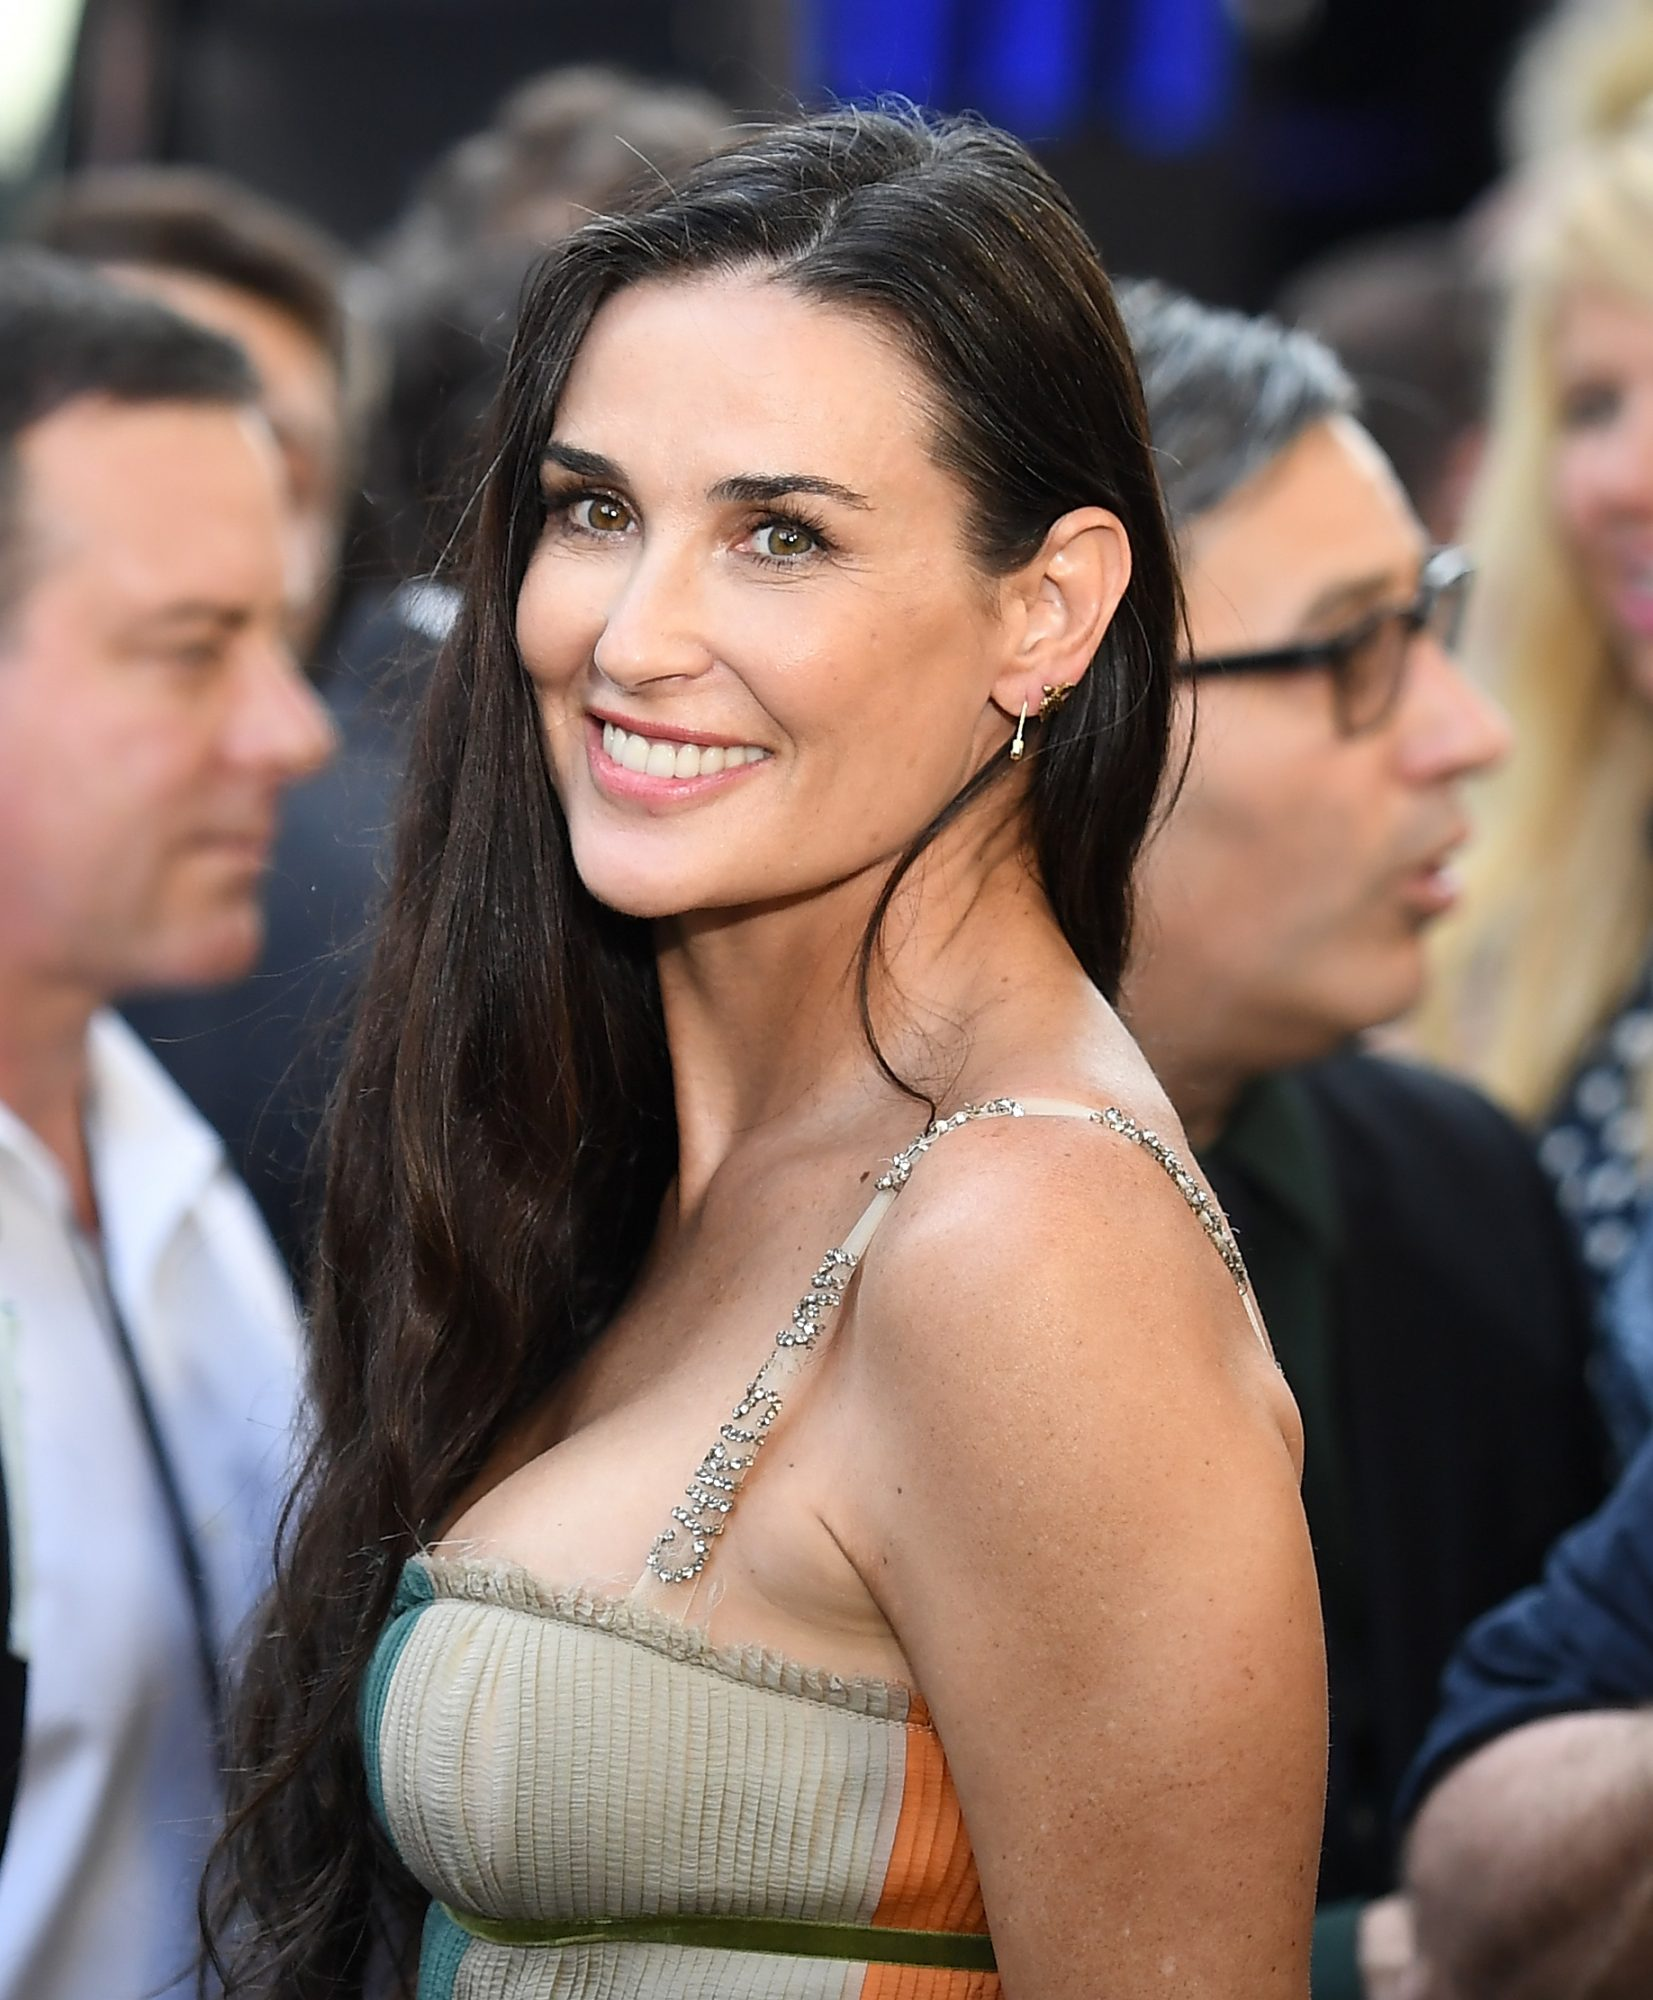 Demi Moore Is Missing Her Two Front Teeth